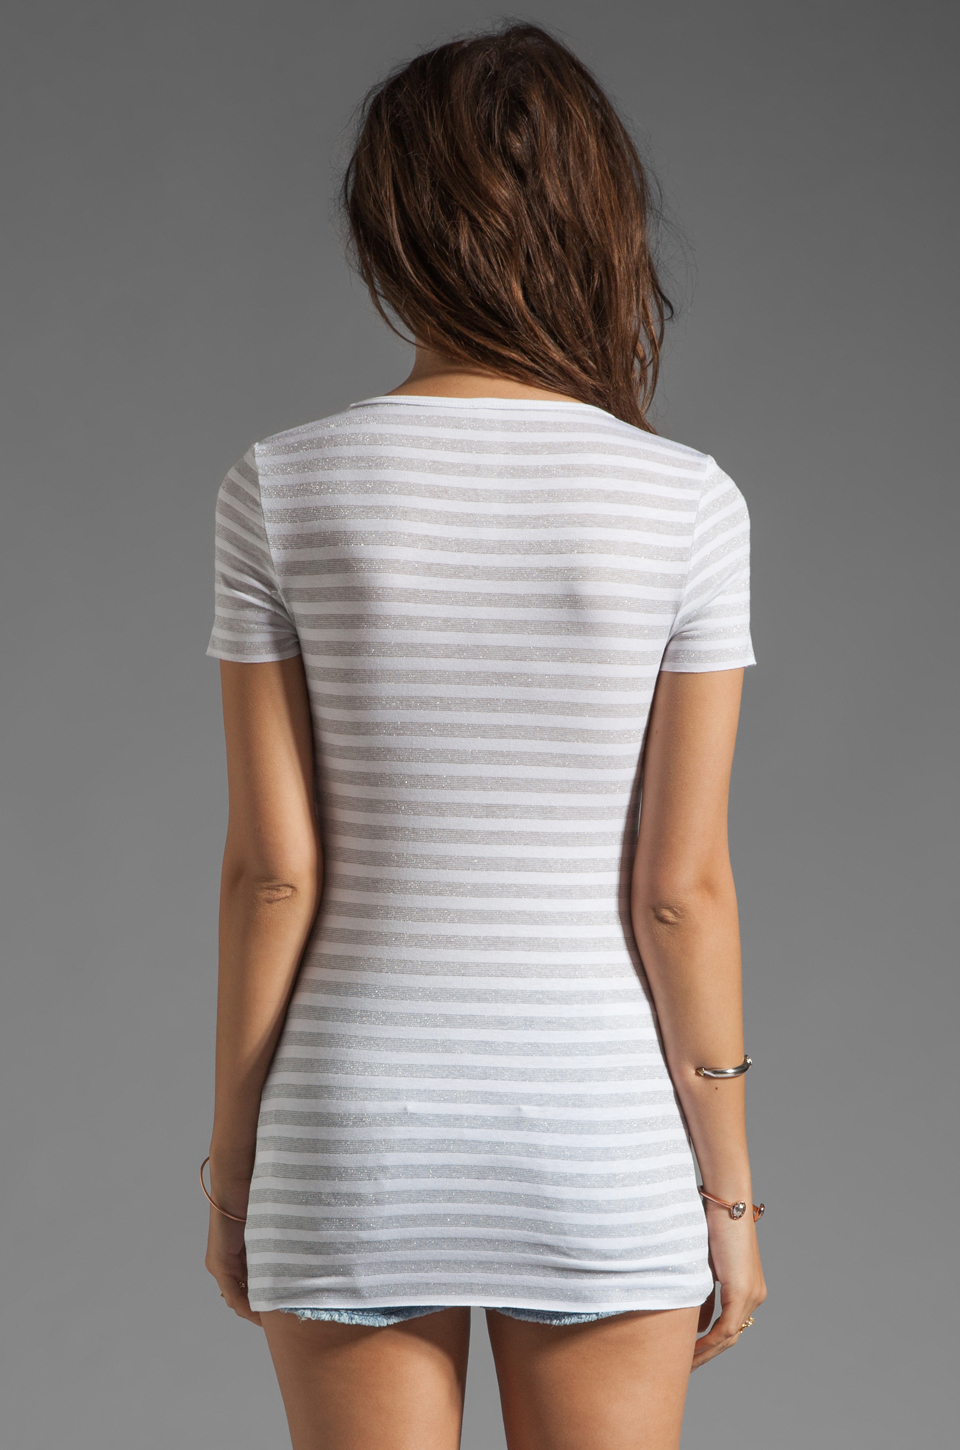 Bailey 44 Metallic Stripe Tee in White